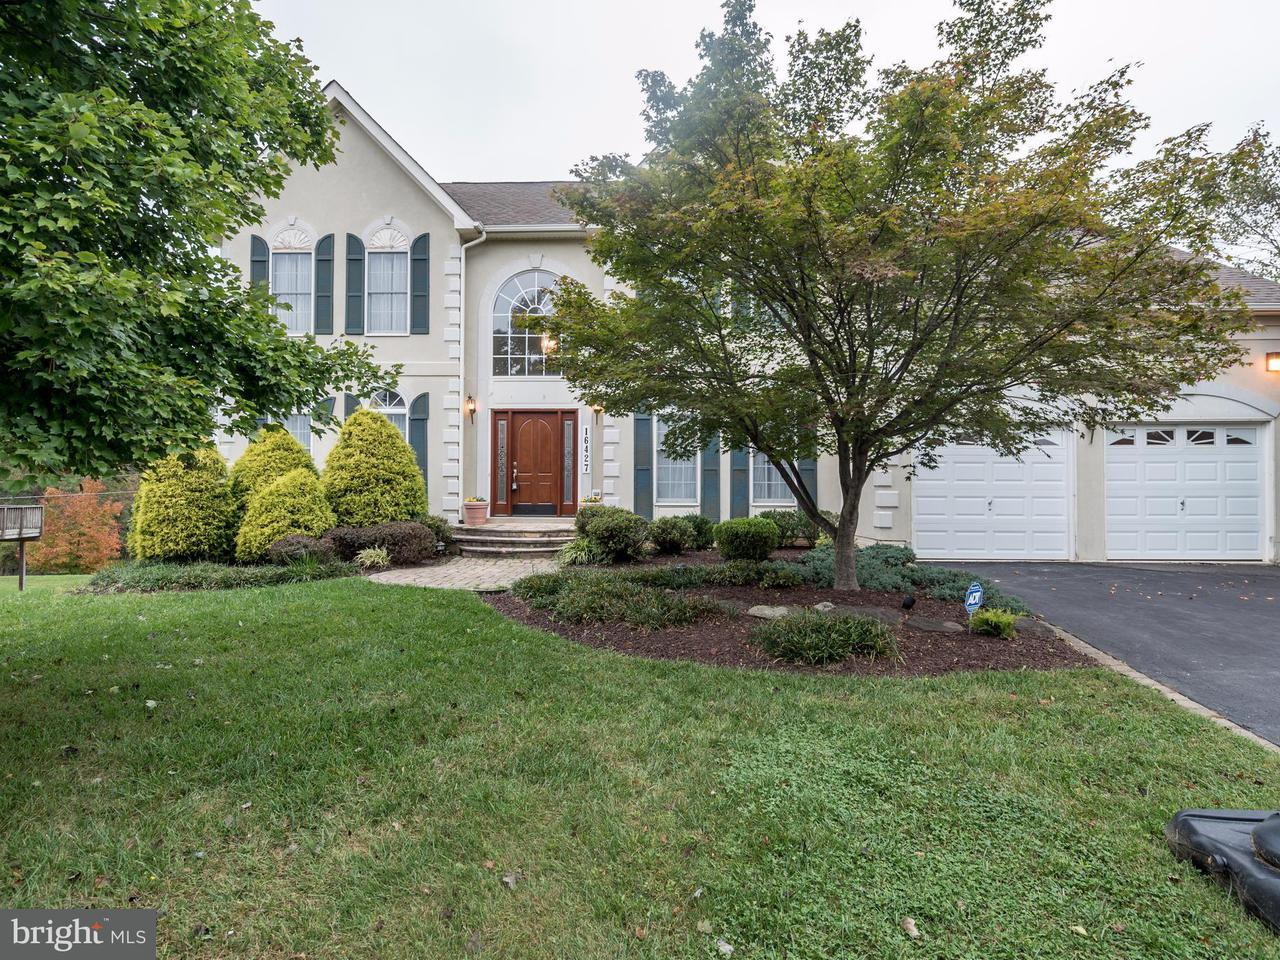 Single Family Home for Sale at 16427 FOX VALLEY TER 16427 FOX VALLEY TER Rockville, Maryland 20853 United States